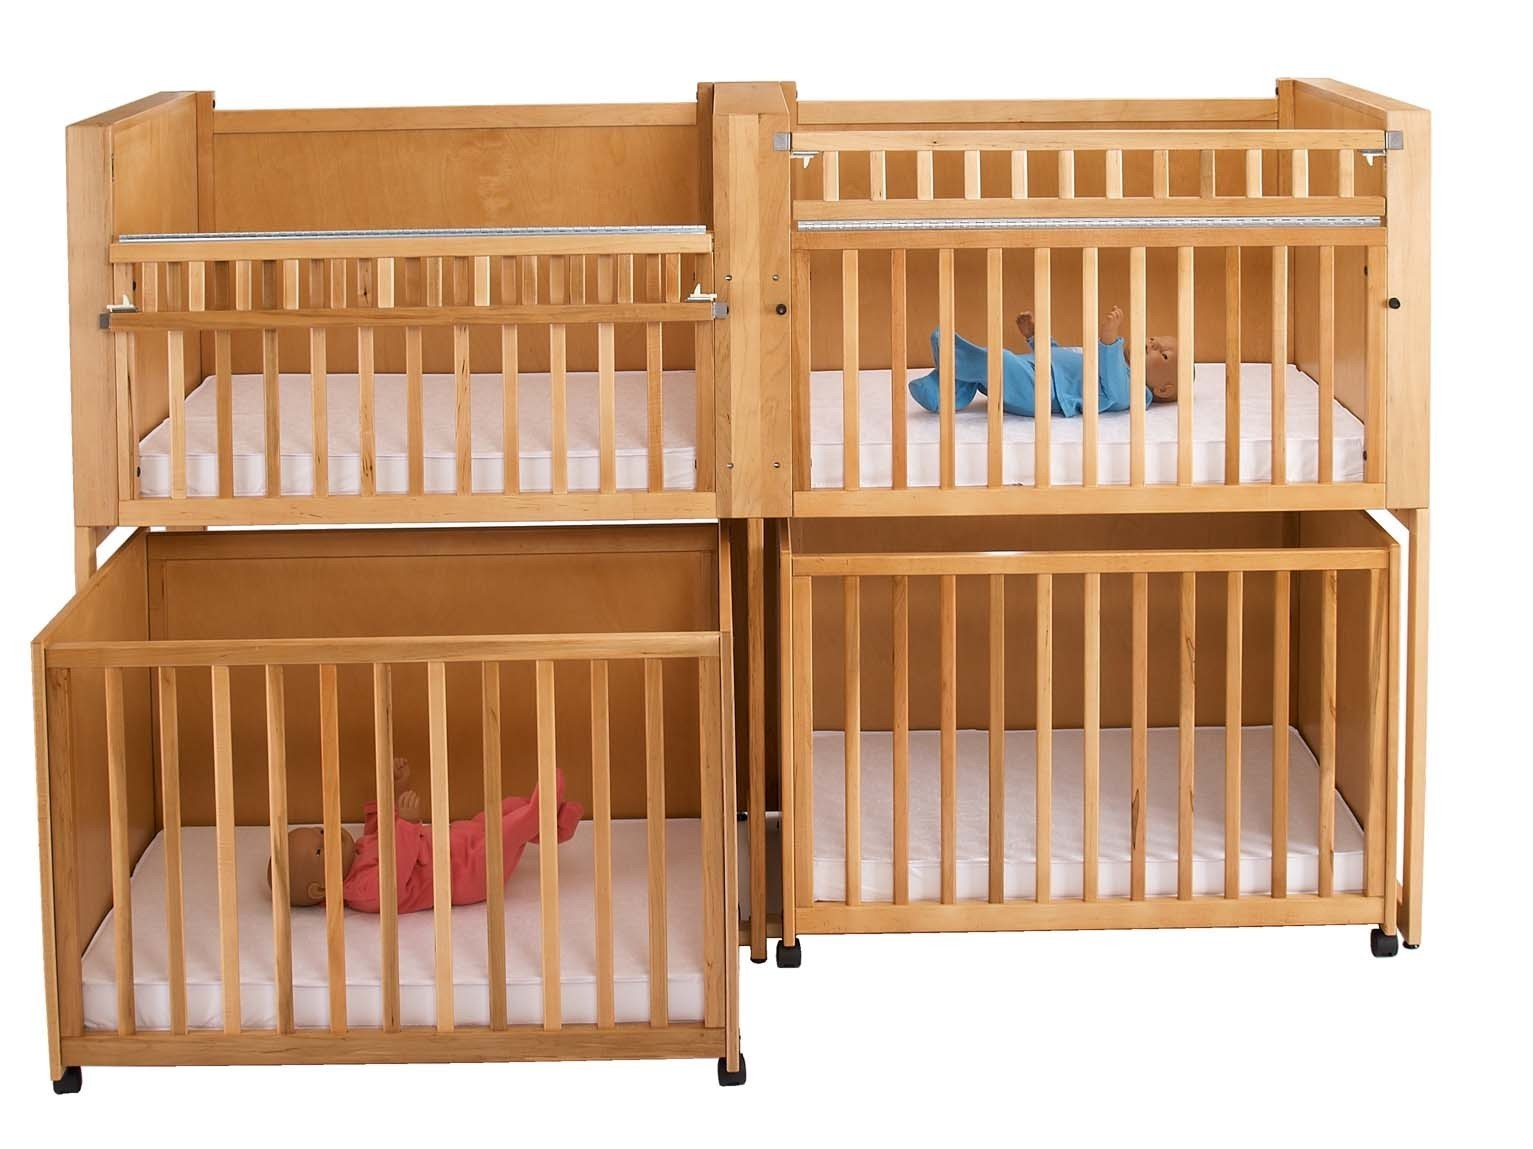 all products in church nursery furniture and cribs